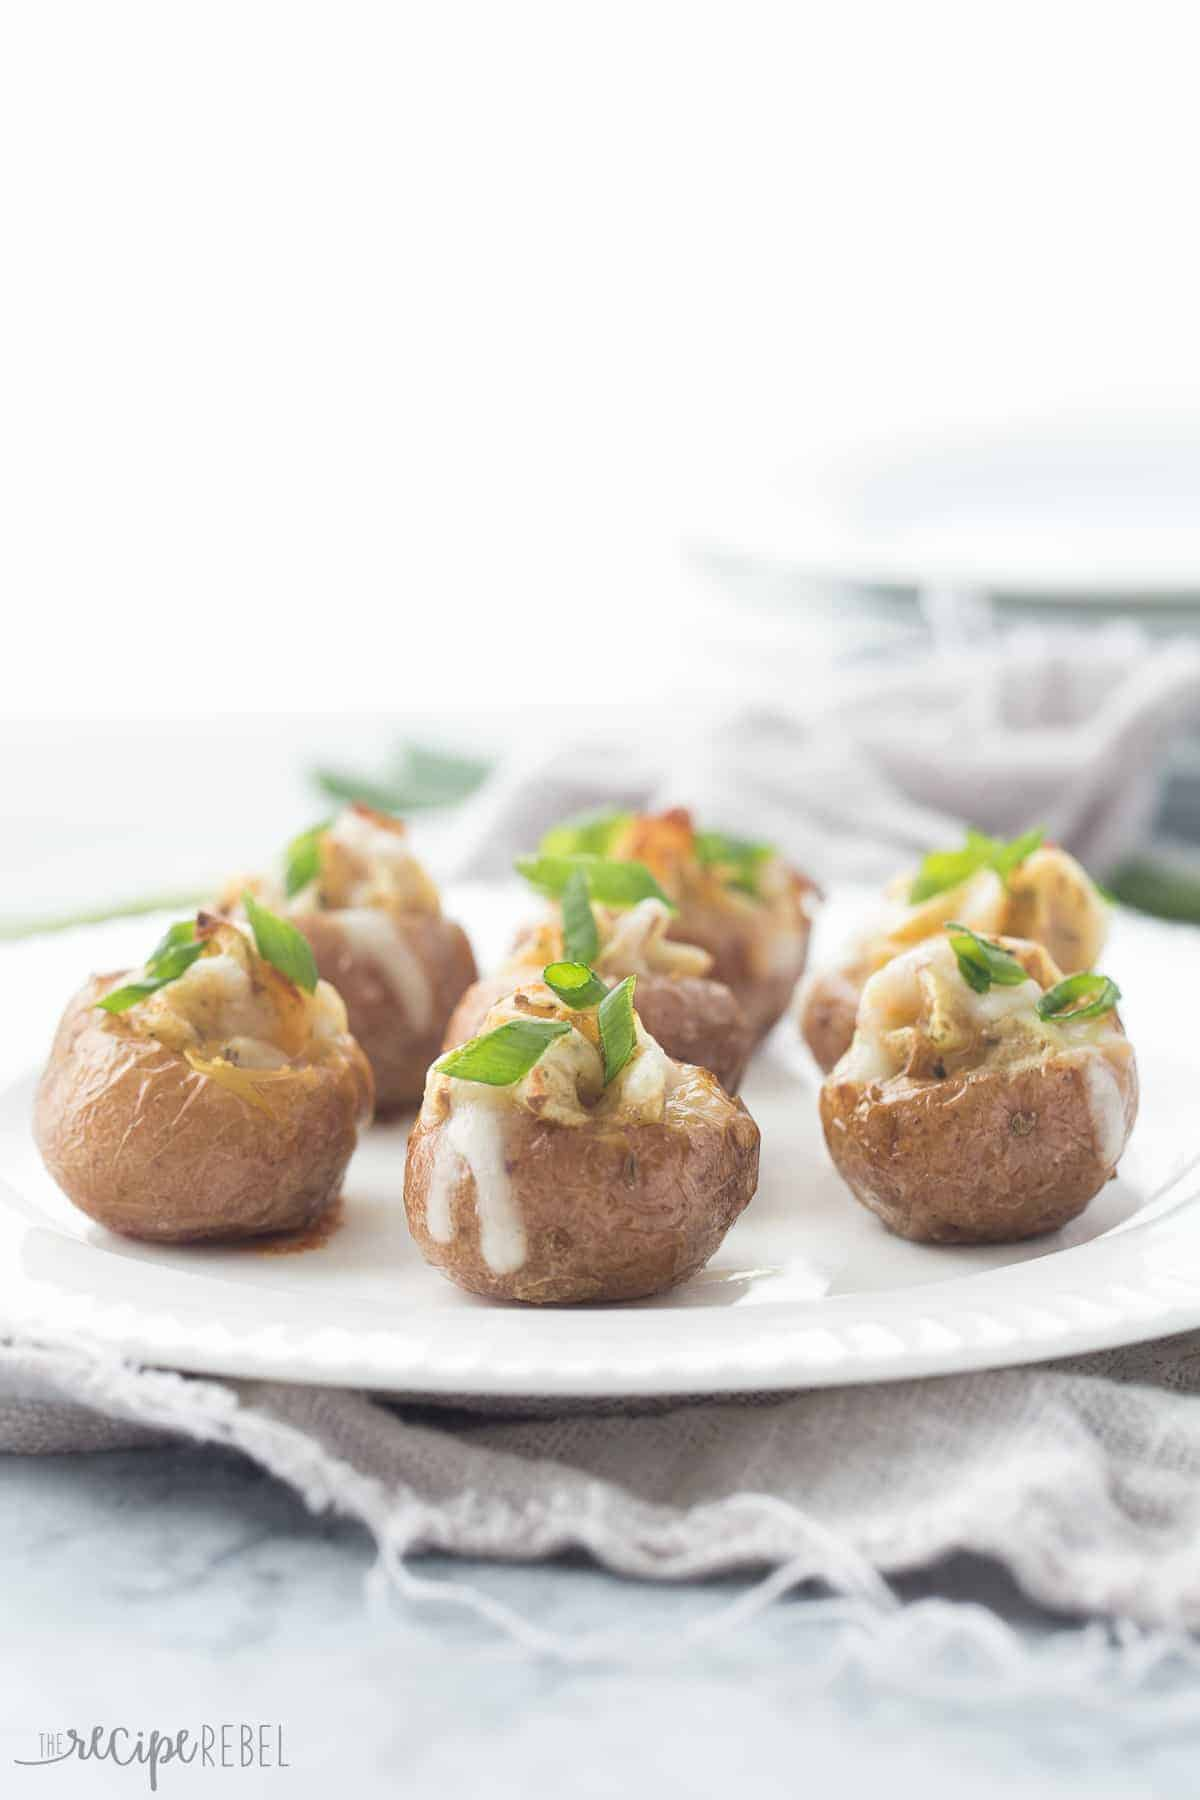 These mini Twice Baked Potatoes are a simple appetizer or even side dish that everyone will love -- creamy, perfectly seasoned, cheesy potatoes stuffed inside a tender potato shell!